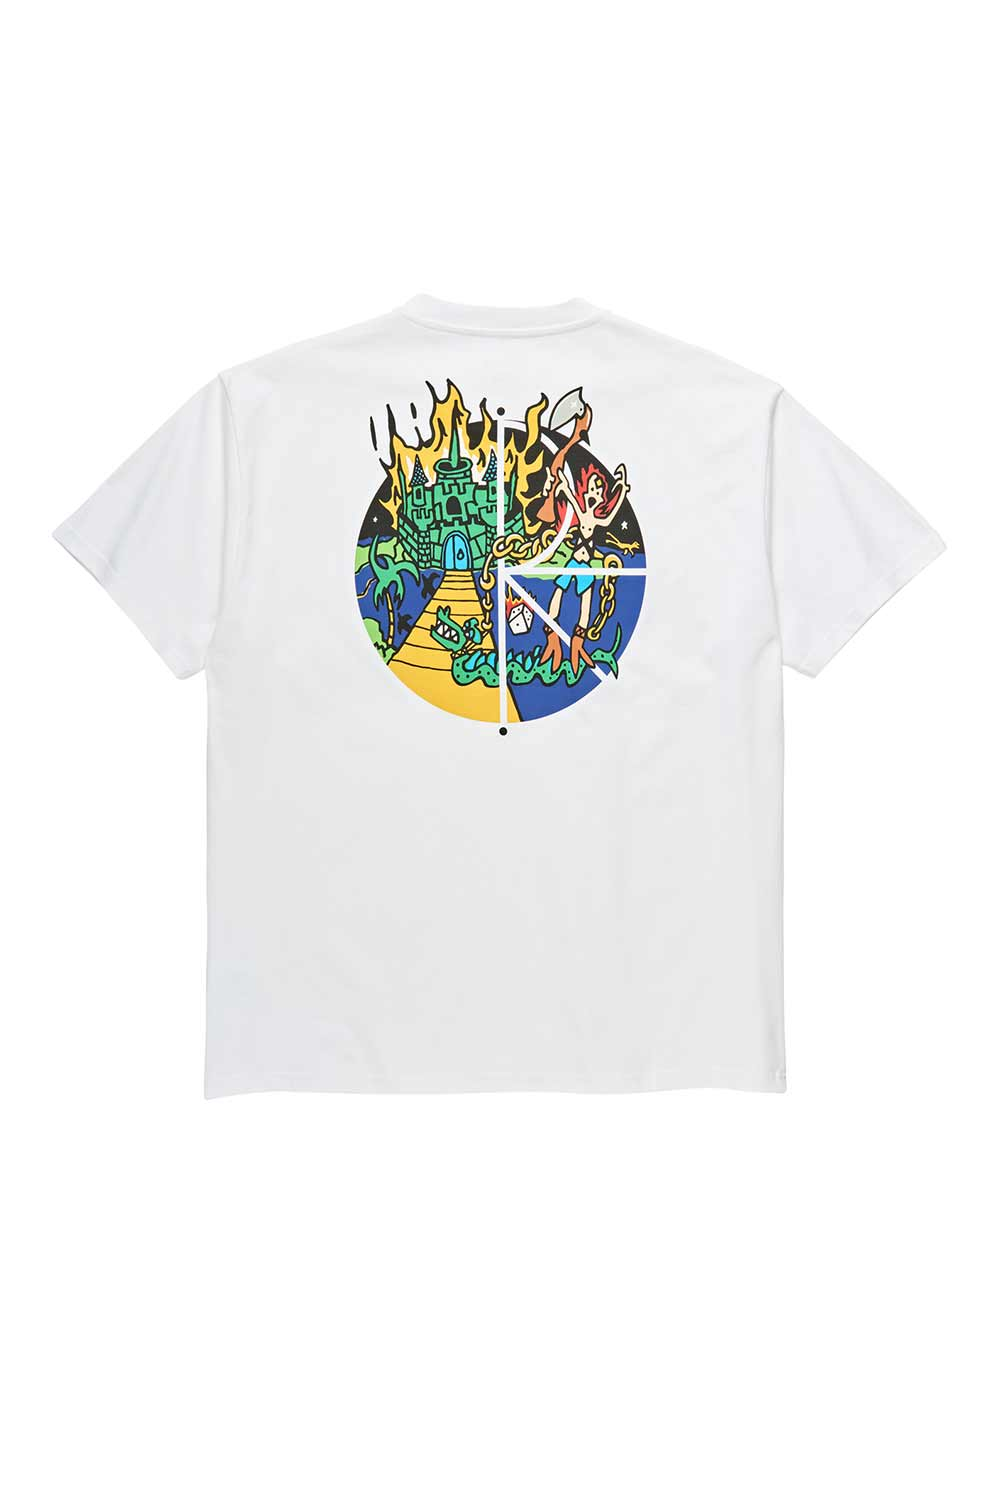 Polar Skate Co Castle Fill Logo Tee - White | Polar Skate Co Online